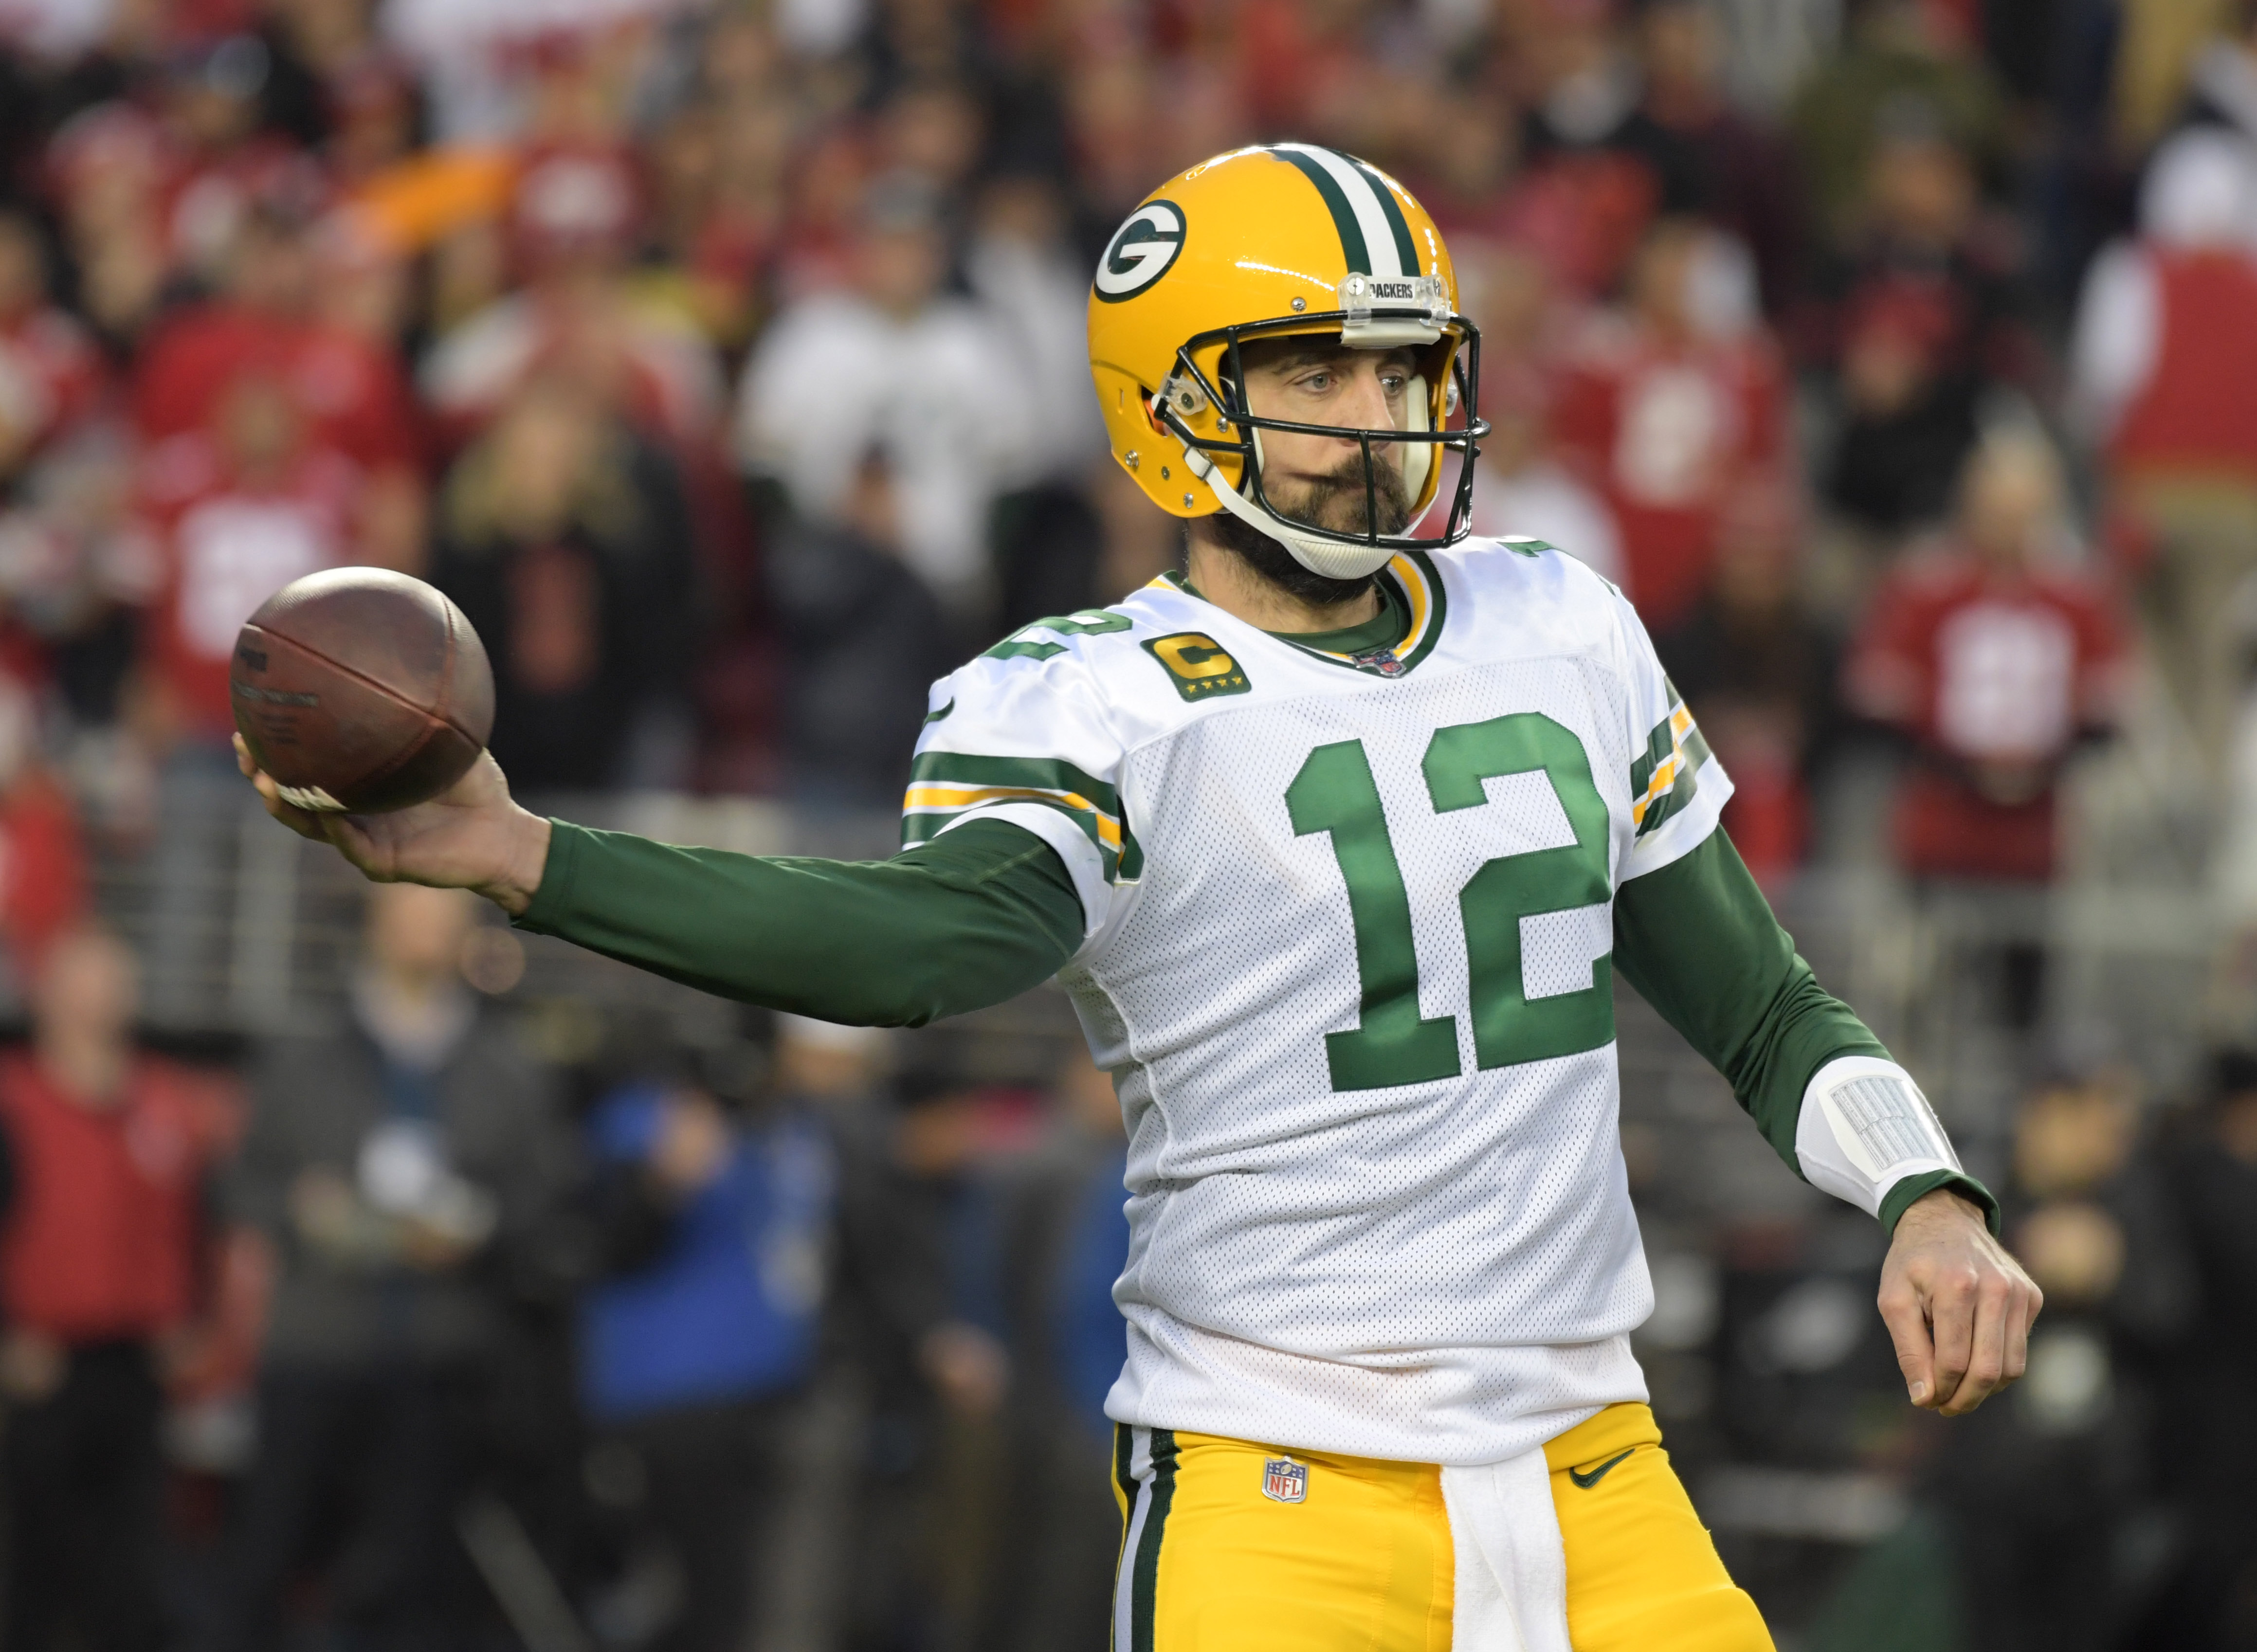 Packers QB Aaron Rodgers Admits Preparing for this Season Will Be a Unique Challenge